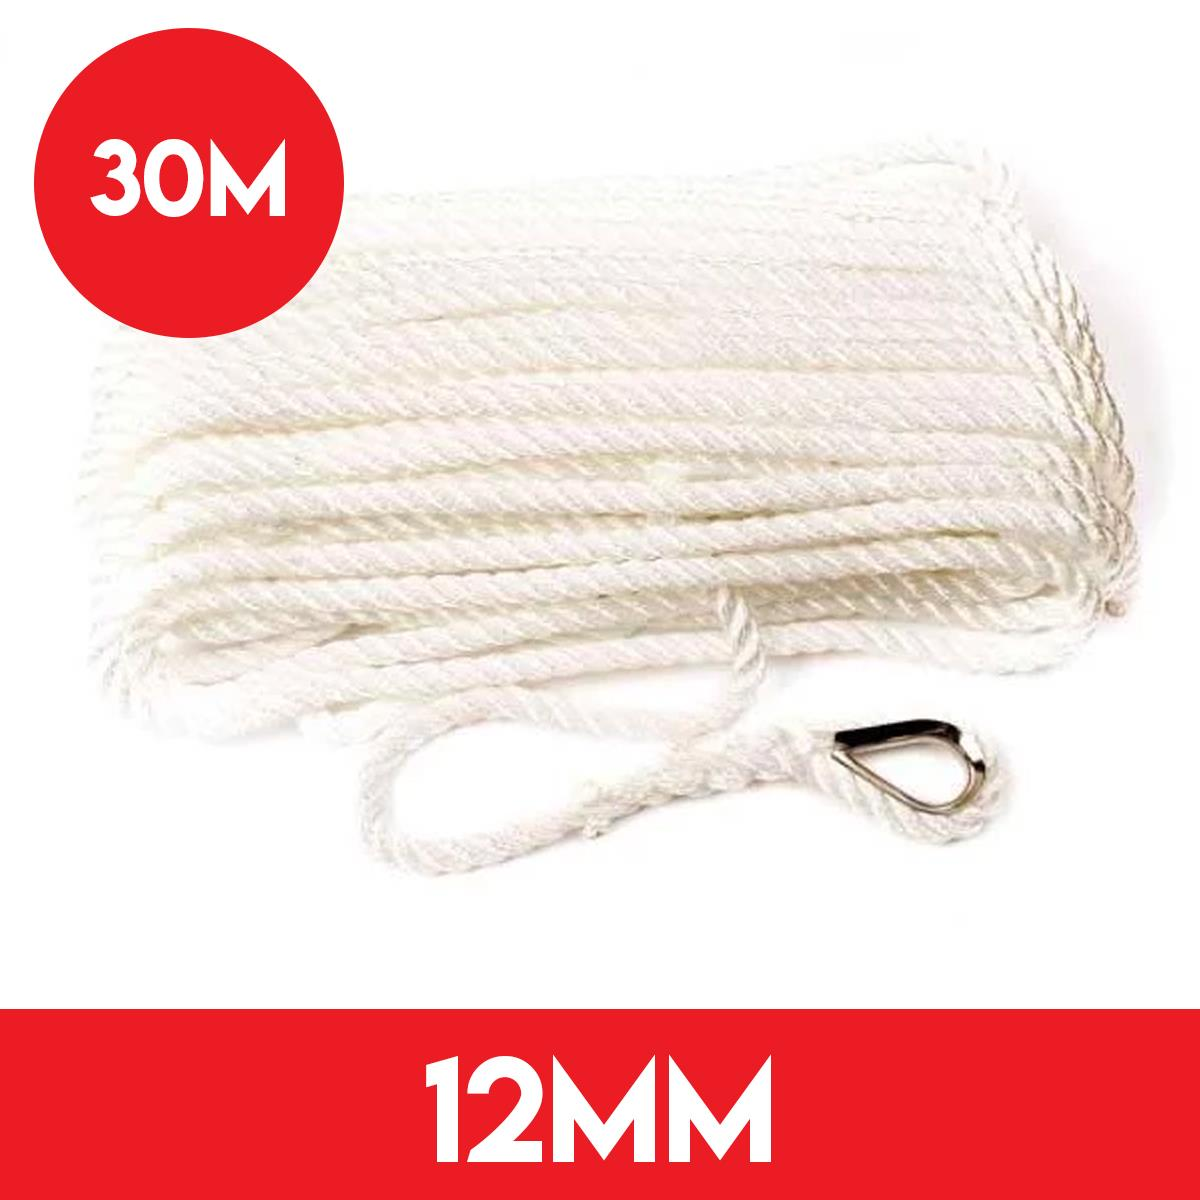 12mm Pre Spliced Anchor Line - 30 Meters